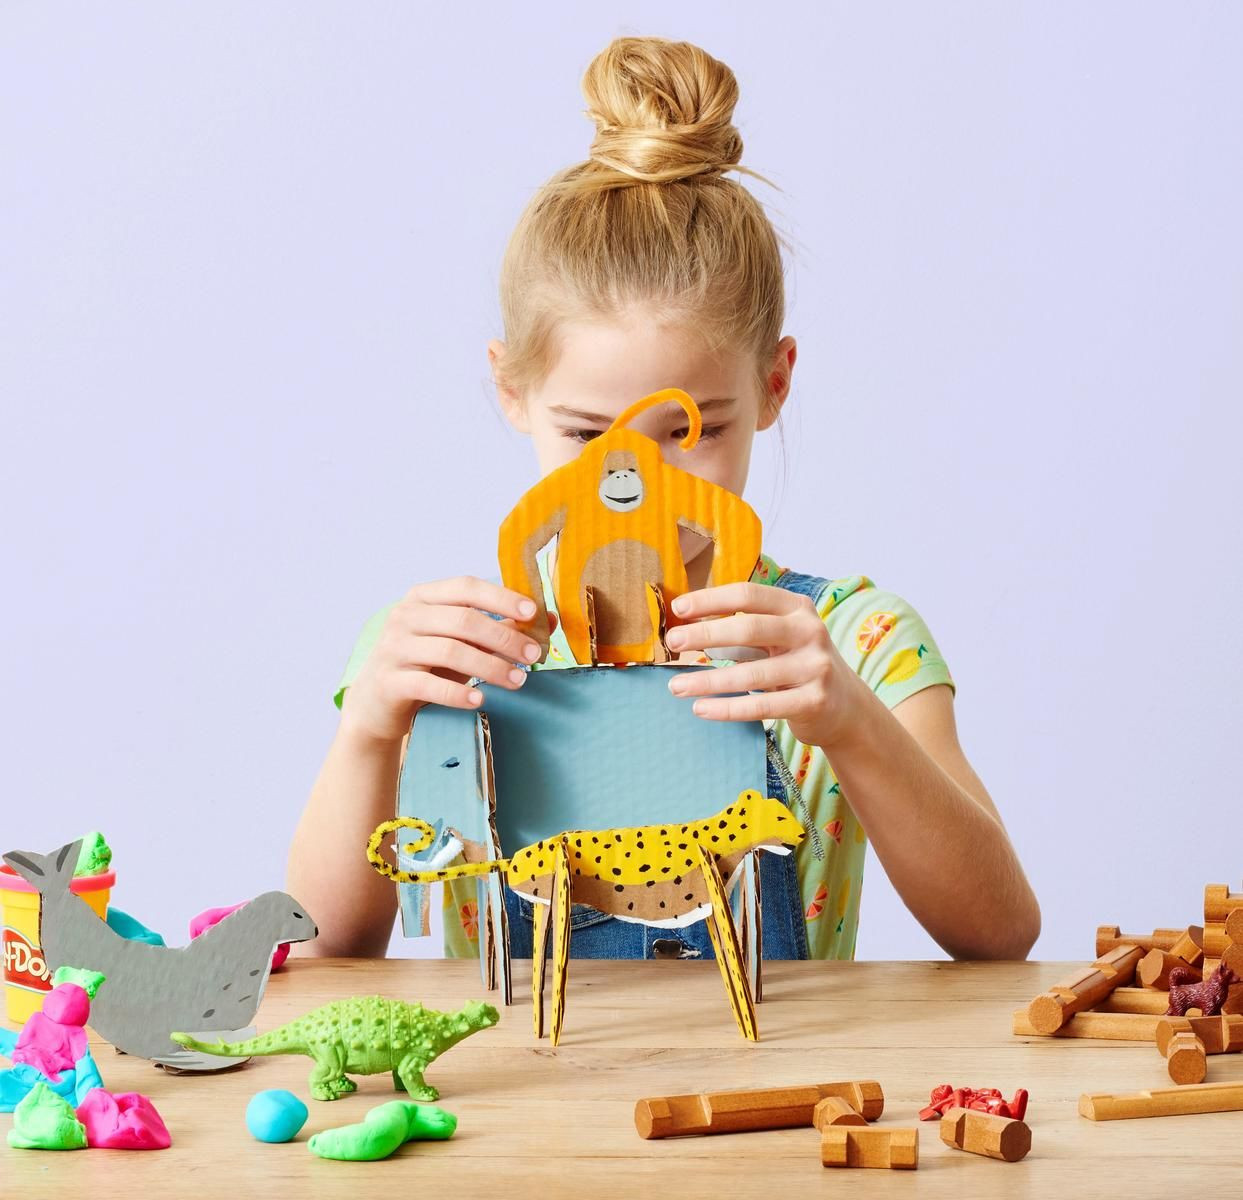 Best ideas about Kids Art And Craft . Save or Pin Cool Paper Crafts for Kids Now.